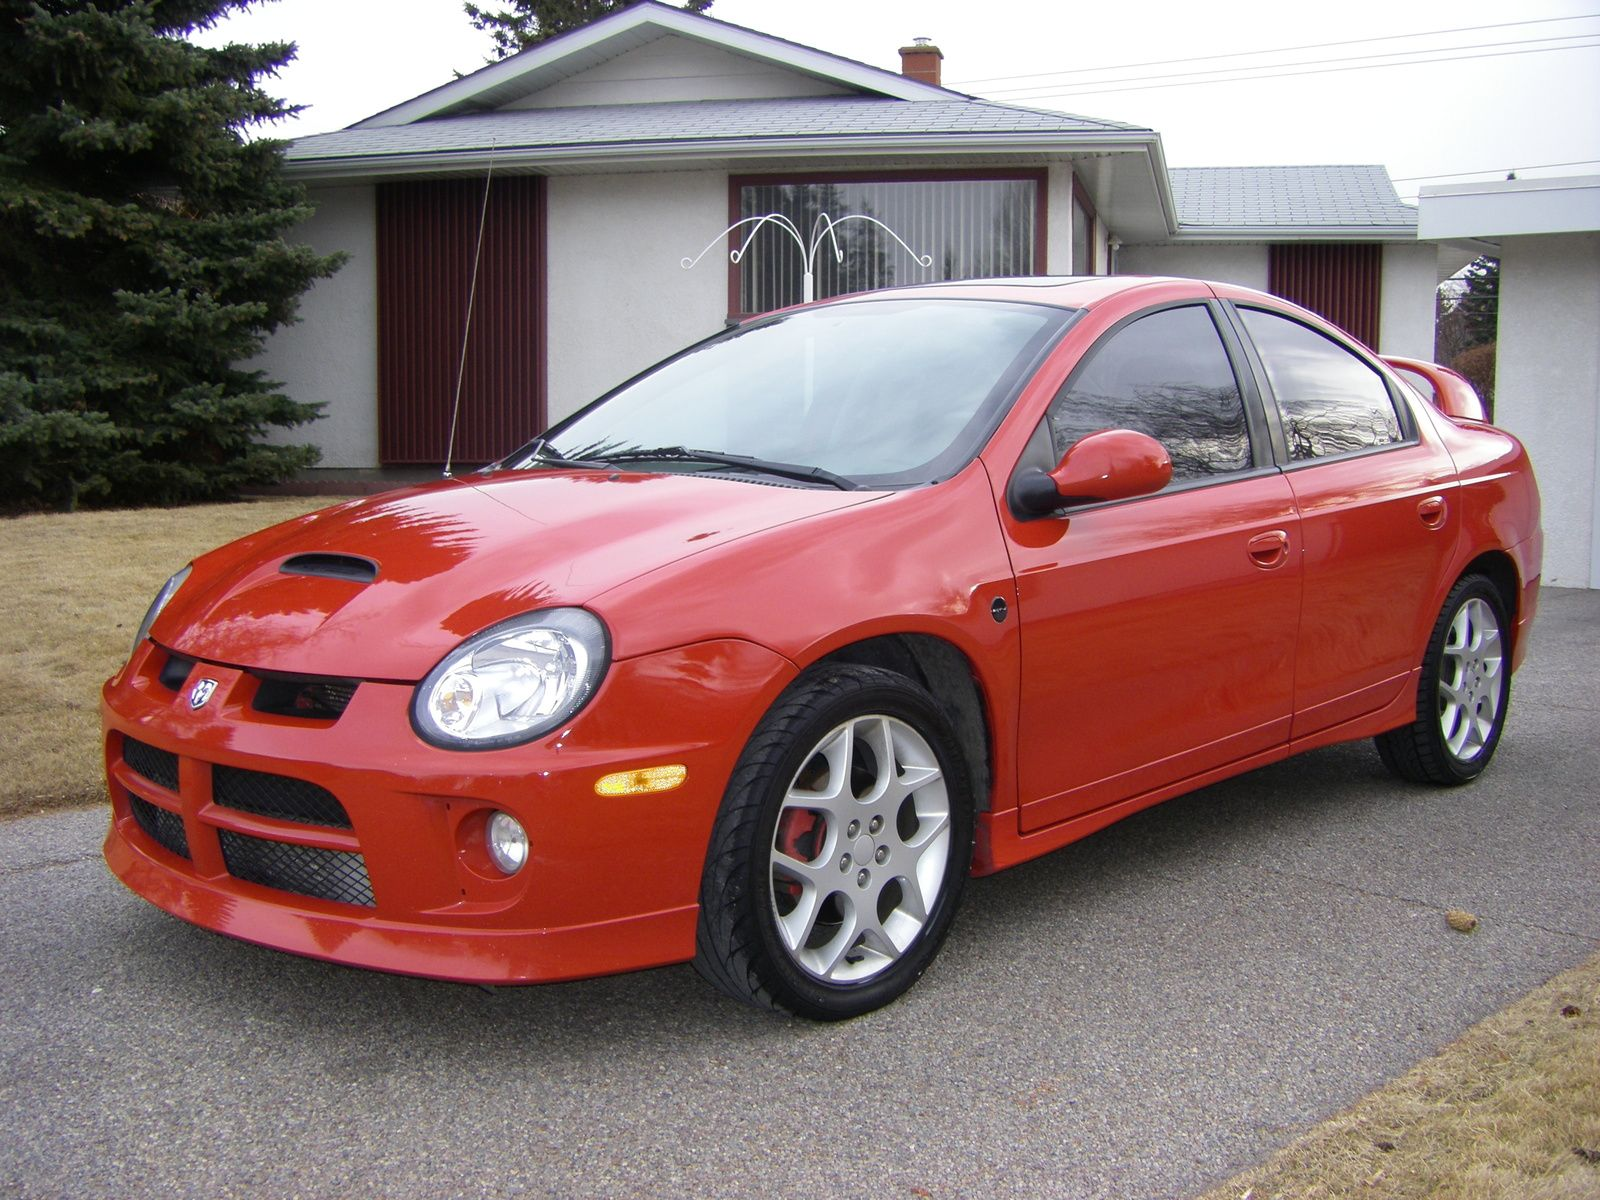 dodge neon srt 4 favorite cars pinterest cars repair manuals rh pinterest com 2004 dodge neon srt 4 service manual dodge neon srt 4 service manual